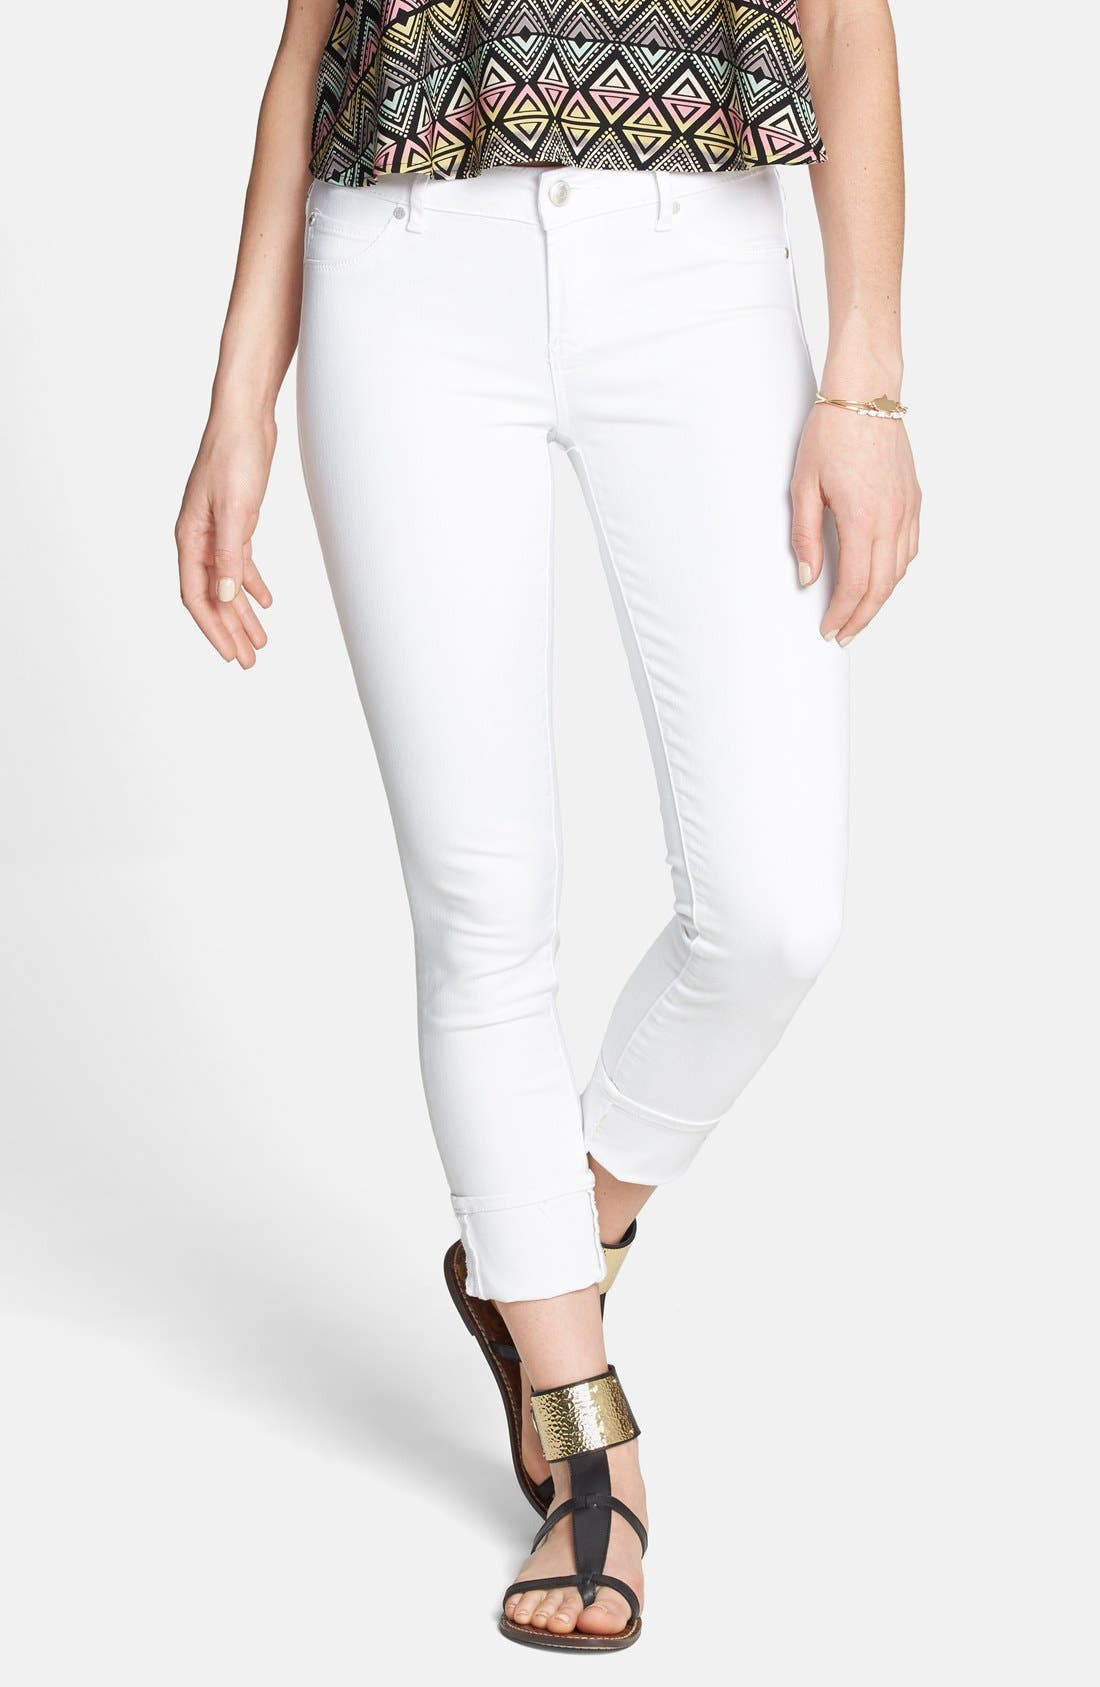 Alternate Image 1 Selected - Articles of Society 'Zoey' Crop Skinny Jeans (Optic White) (Juniors)